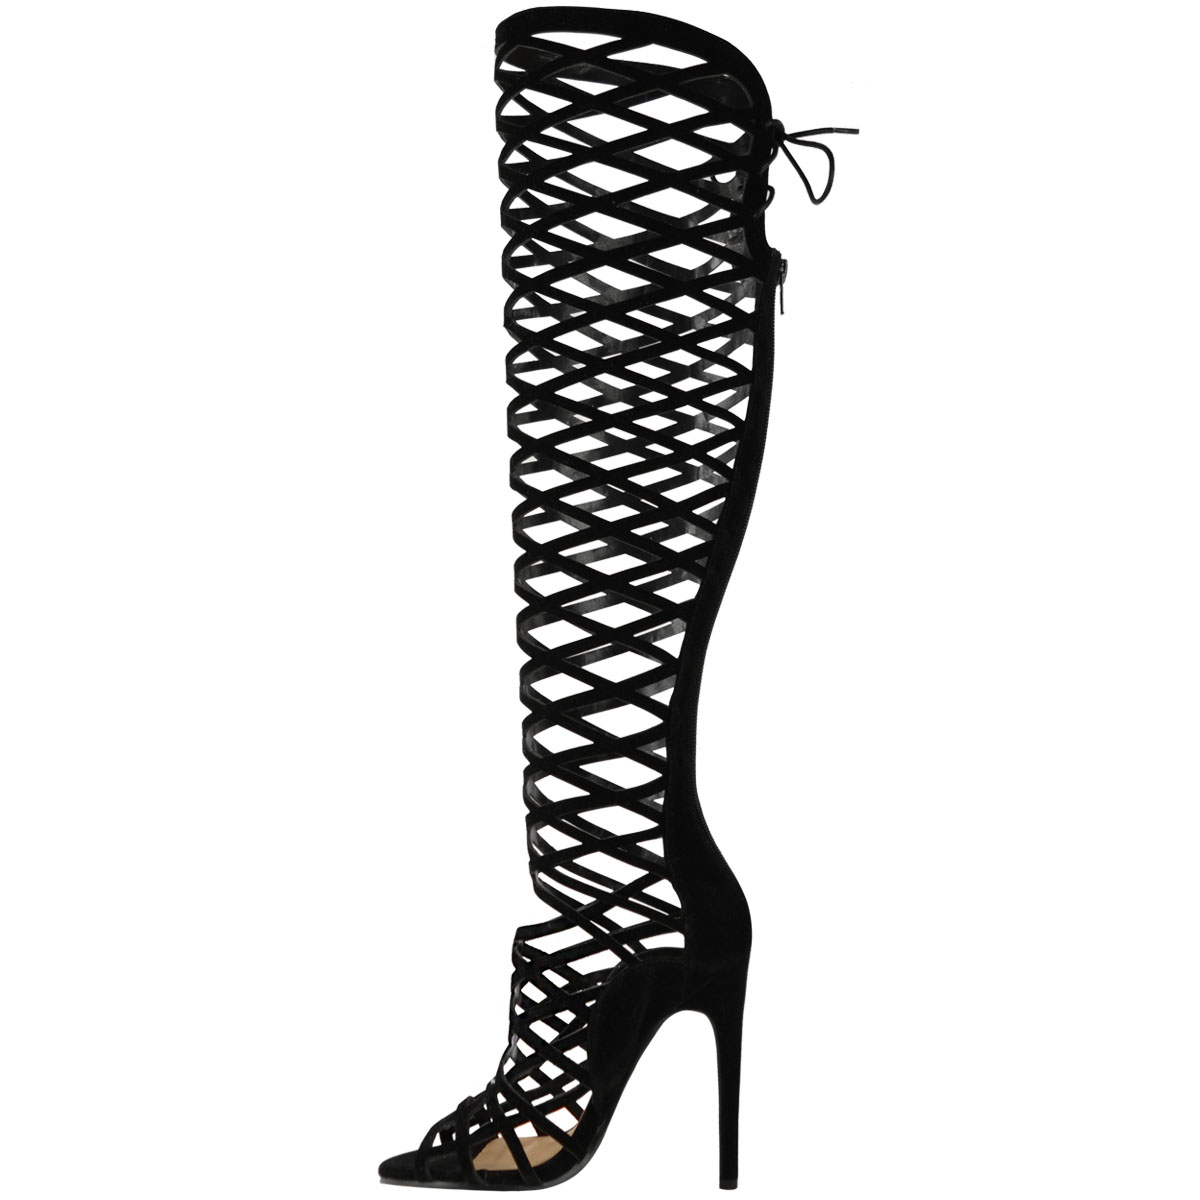 Knee High Heel Gladiator Sandals 4Gak9SvL